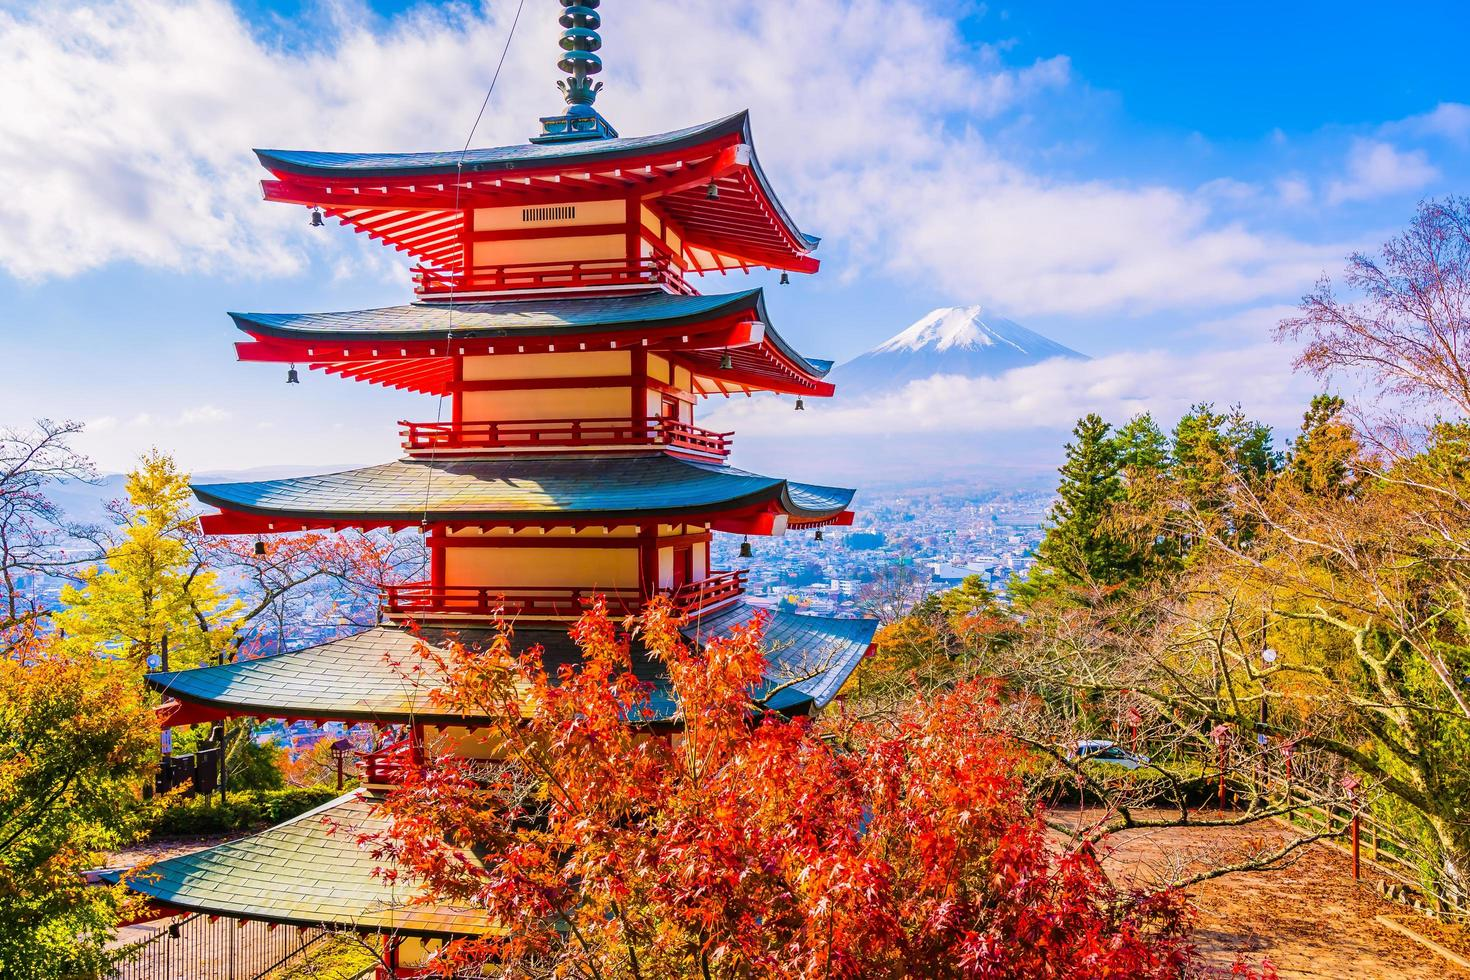 Mt. Fuji with Chureito pagoda in Japan photo